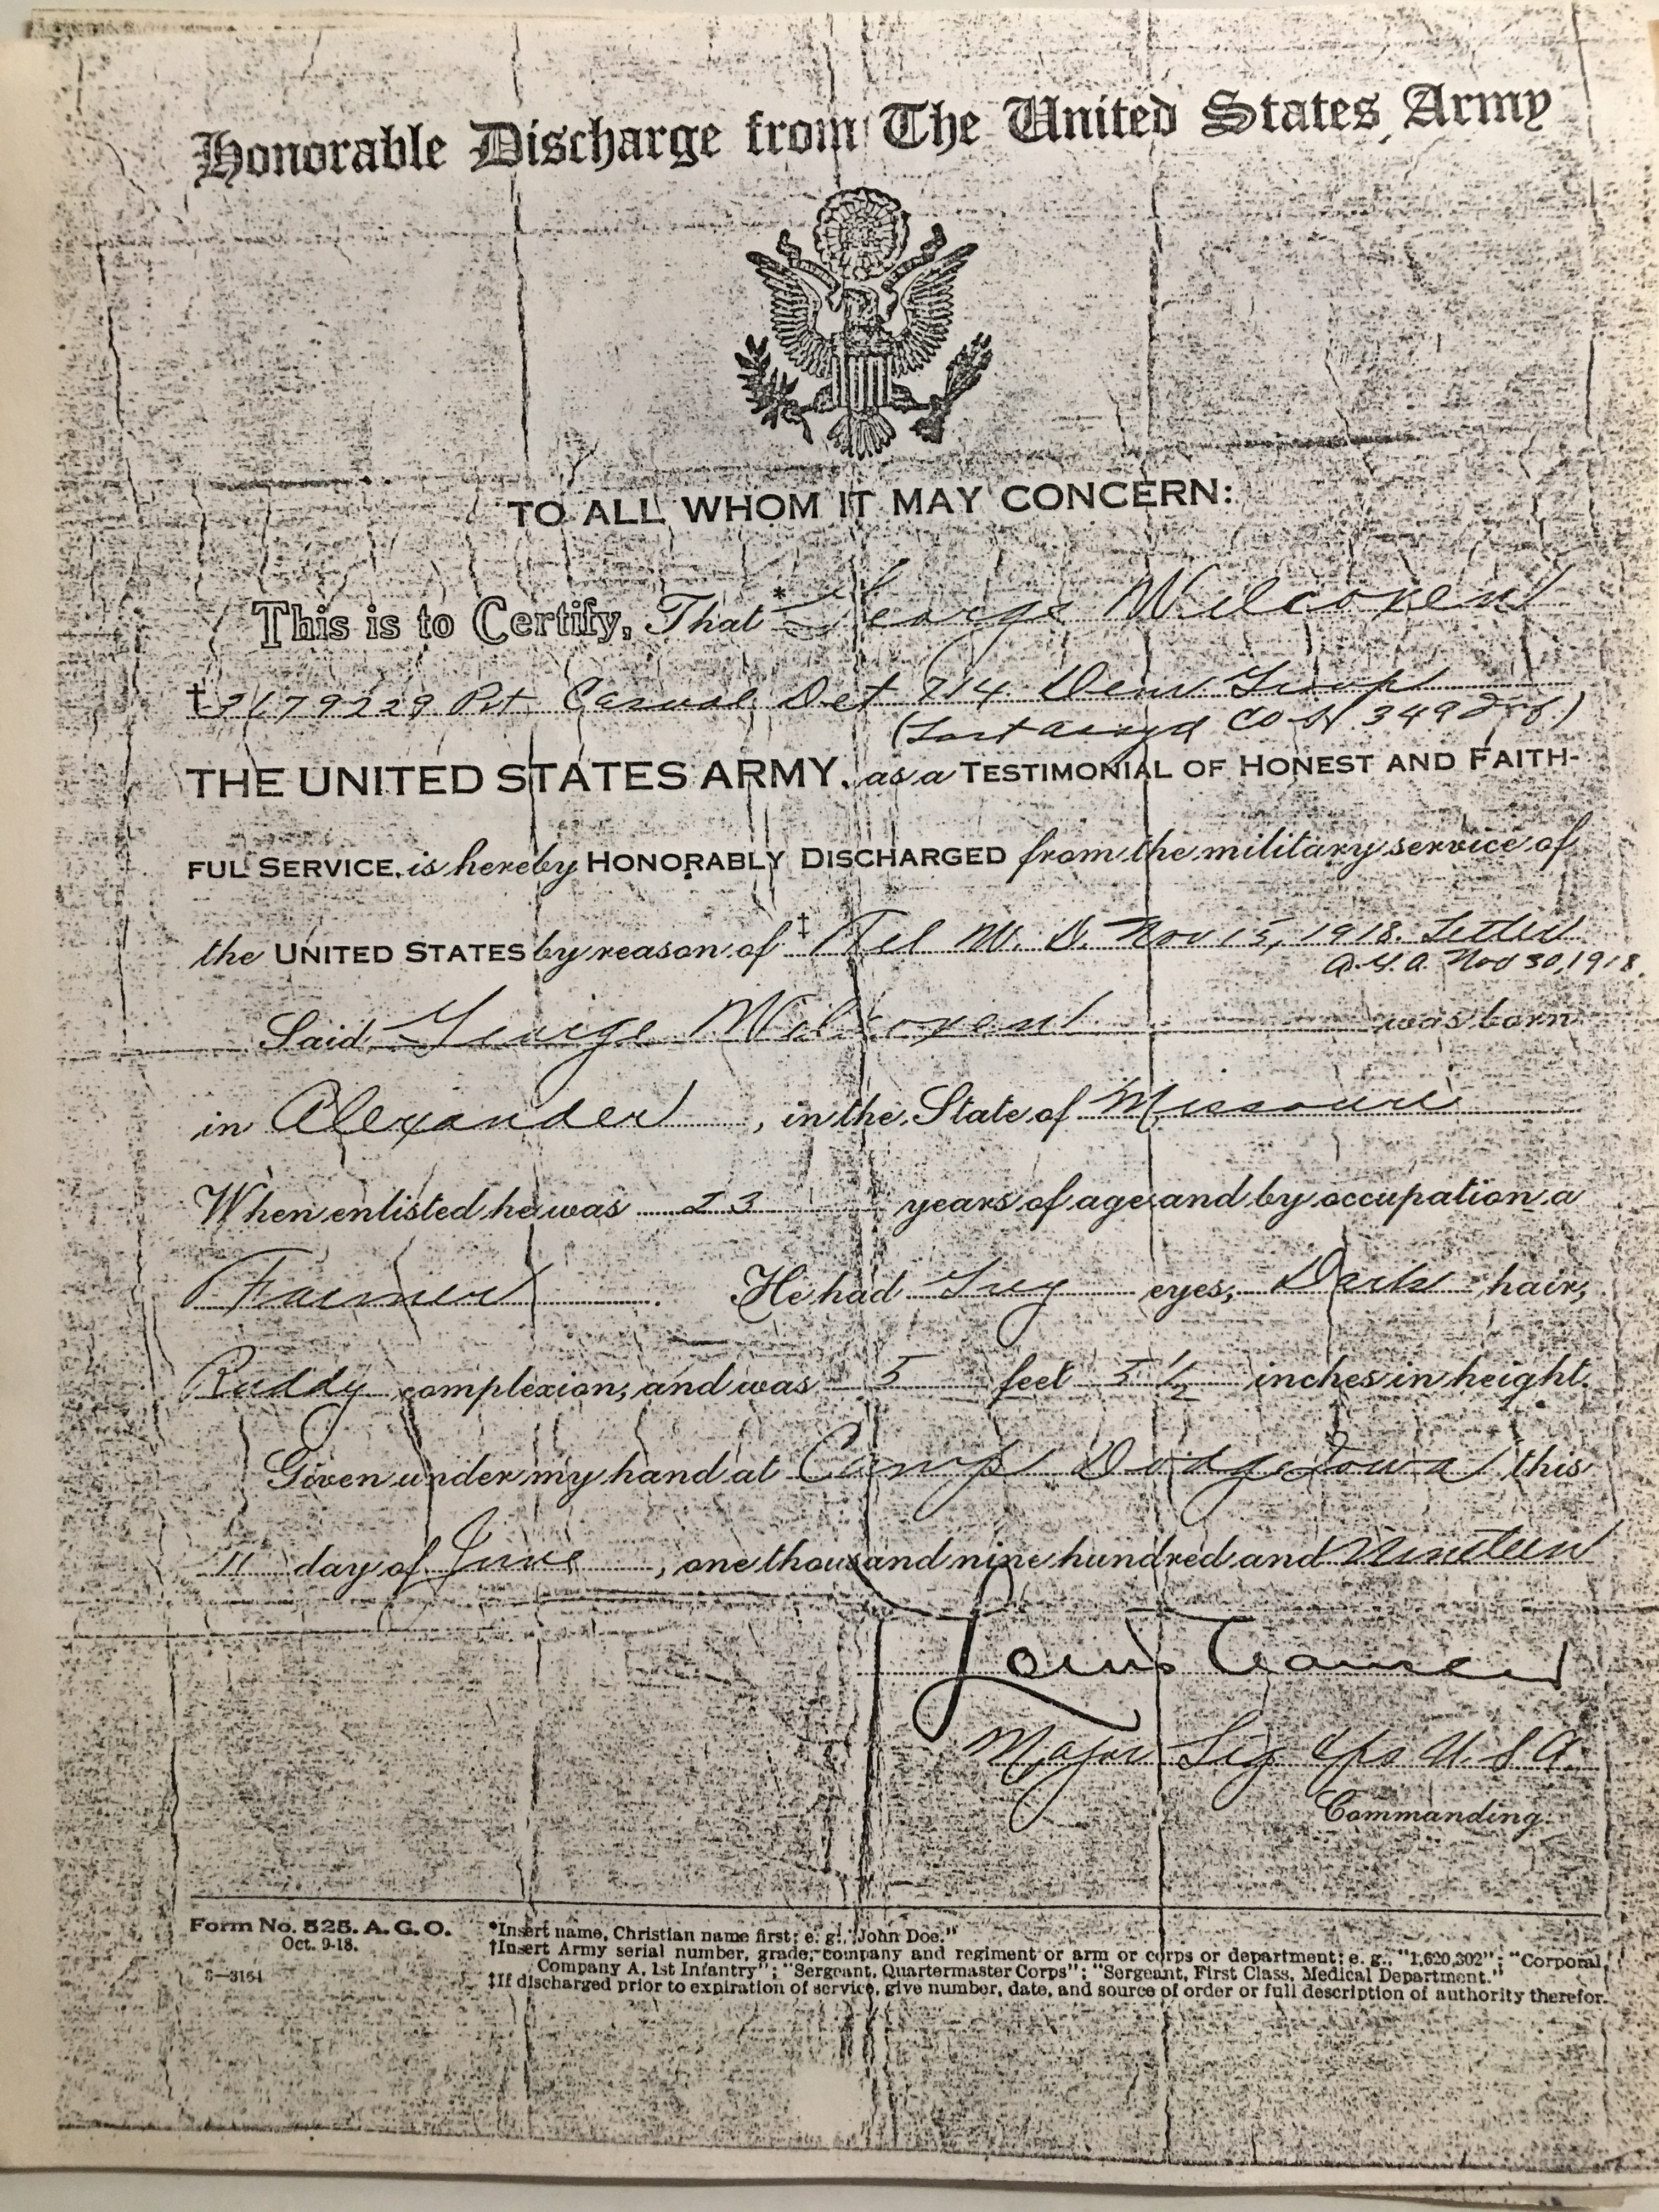 Us Army Honorable Discharge Certificate George Wayne Wilcoxen Sr